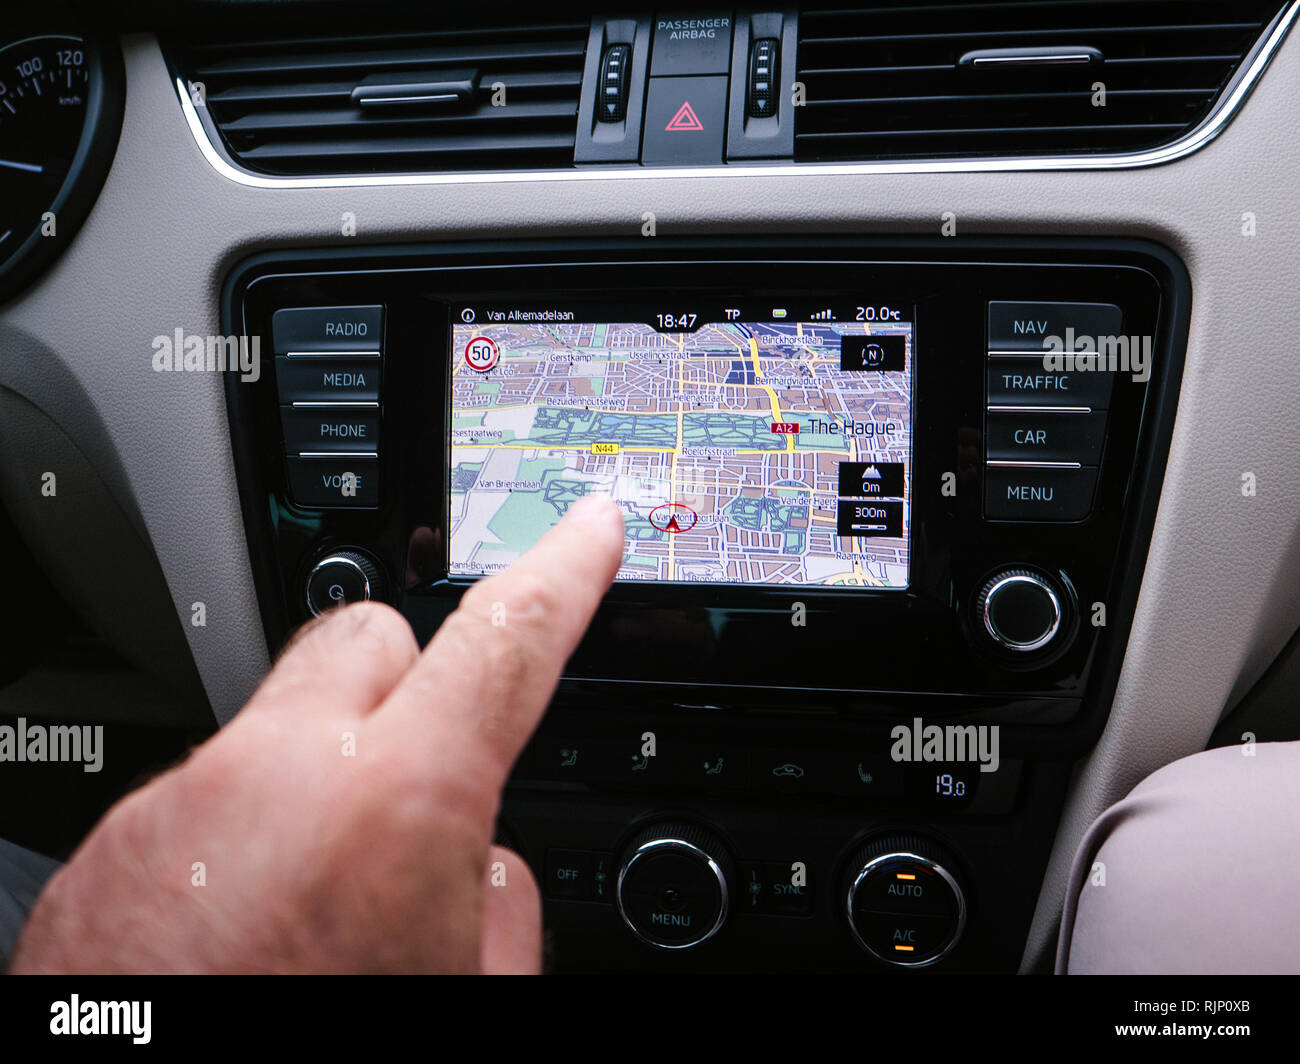 THE HAGUE, NETHERLANDS - AUG 19, 2018: Crop shot of male finger pointing at GPS tablet inside of car while navigating in city of Hague, Netherlands on Van Alkemadelaan street - Stock Image